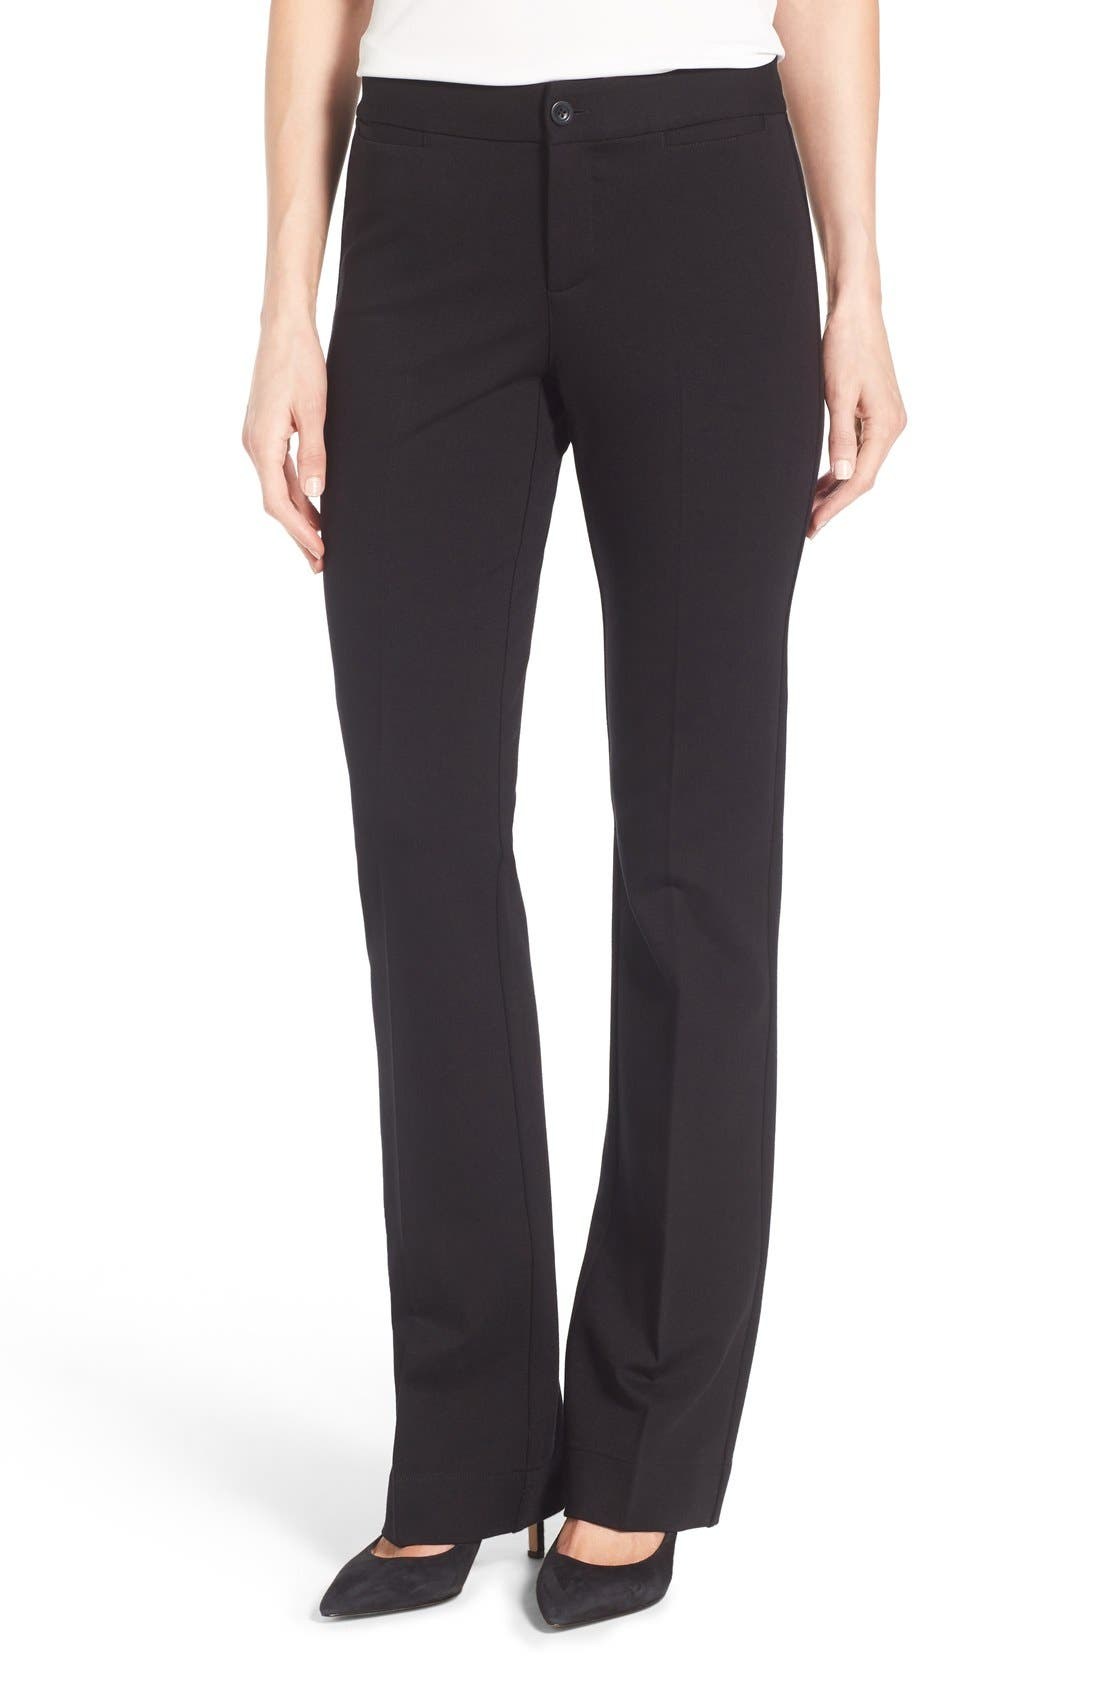 NYDJ Michelle Stretch Ponte Trousers (Regular & Petite)